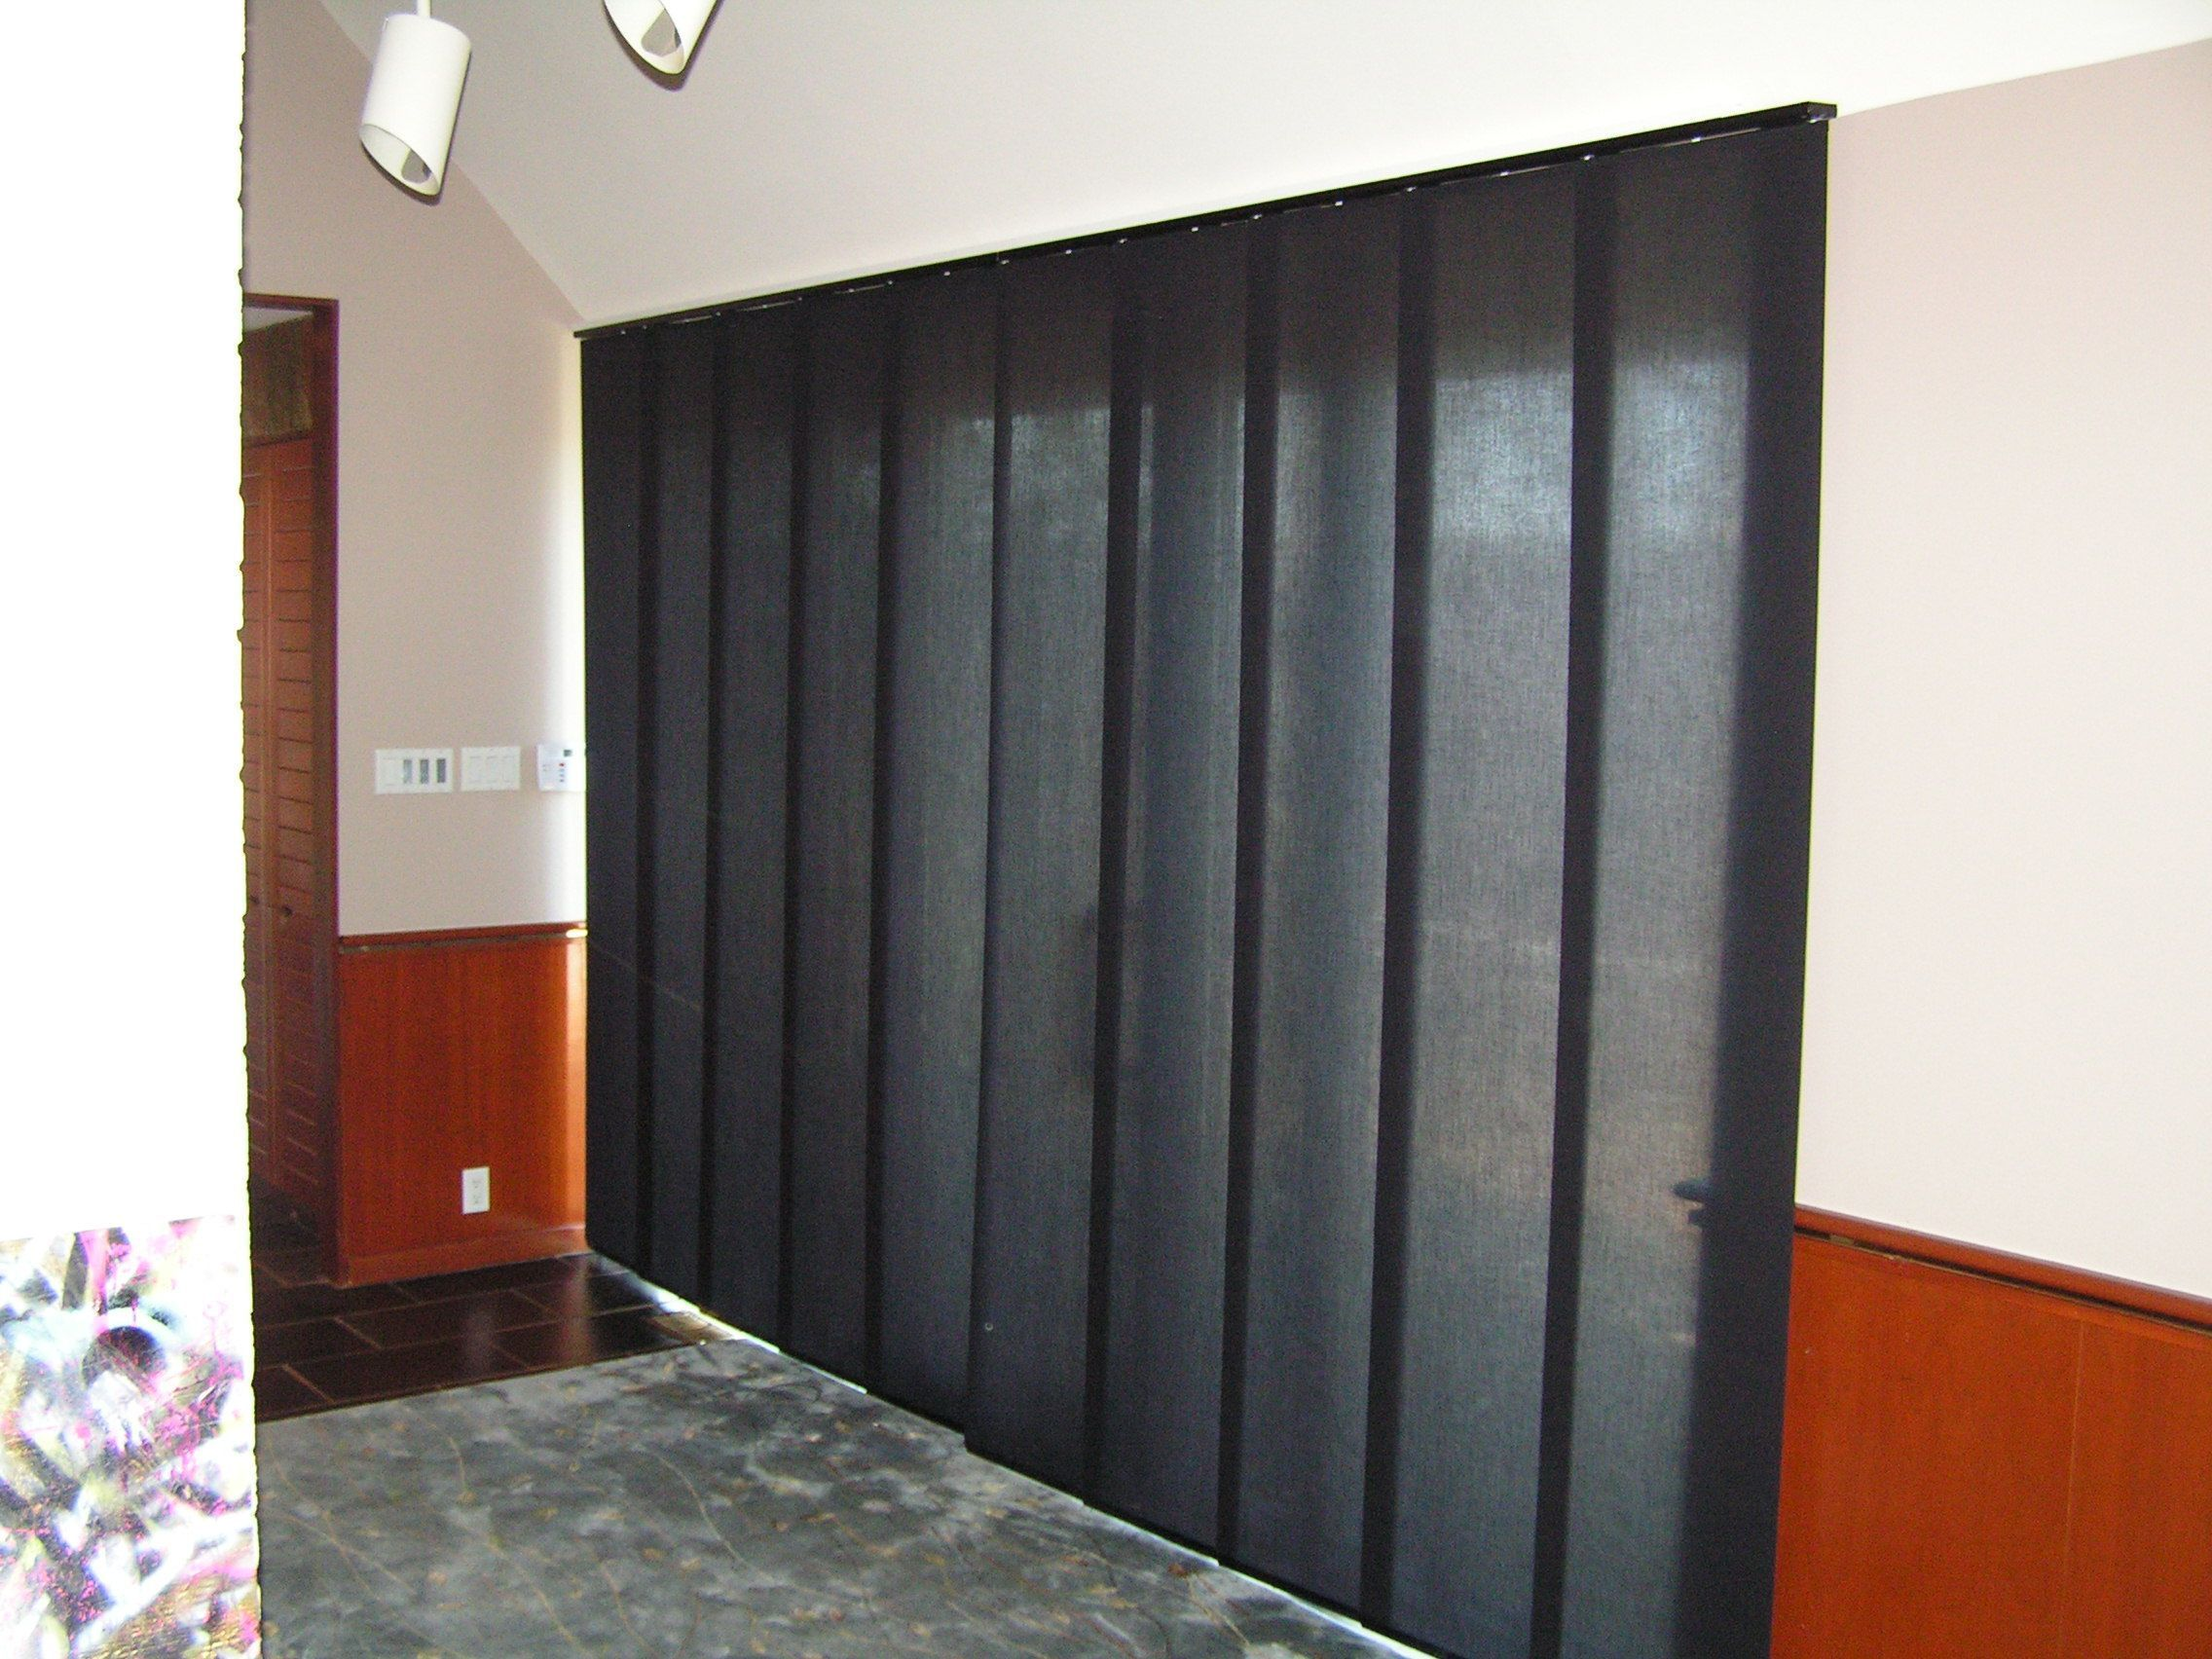 Skyline gliding panels on a patio door love these have them